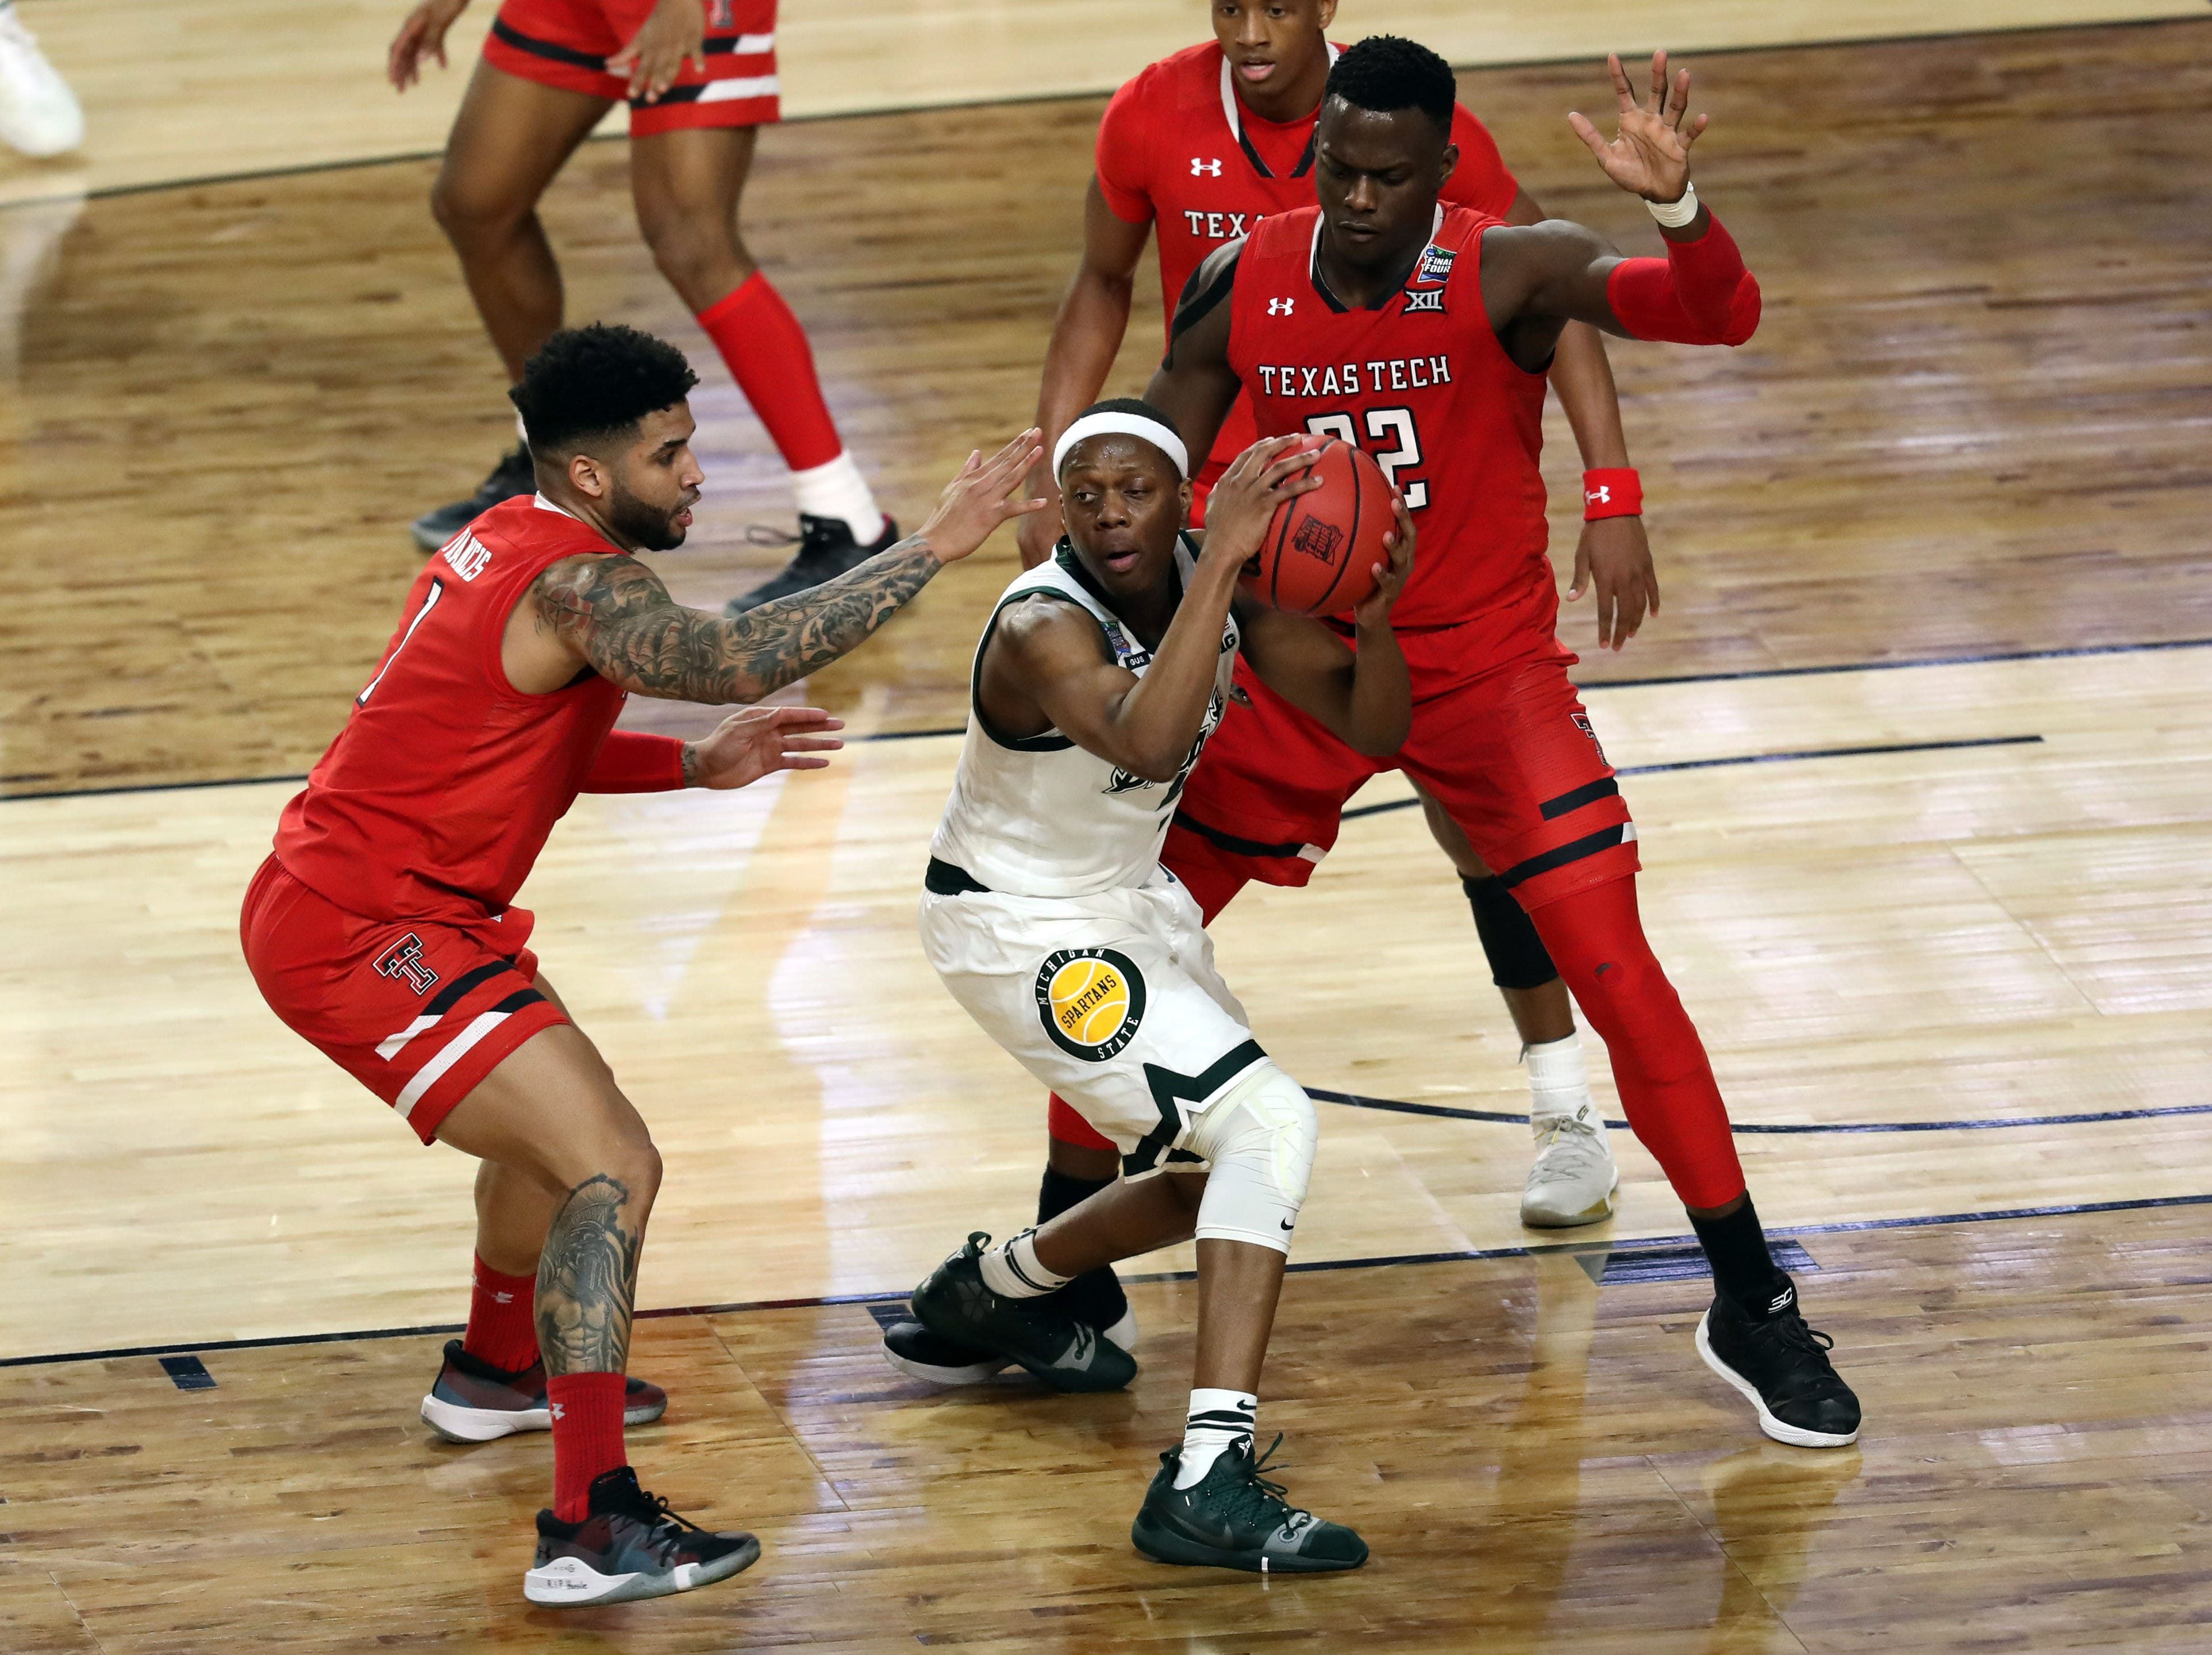 Michigan State Spartans guard Cassius Winston (5) is guarded by Texas Tech Red Raiders guard Brandone Francis (1) and center Norense Odiase (32).